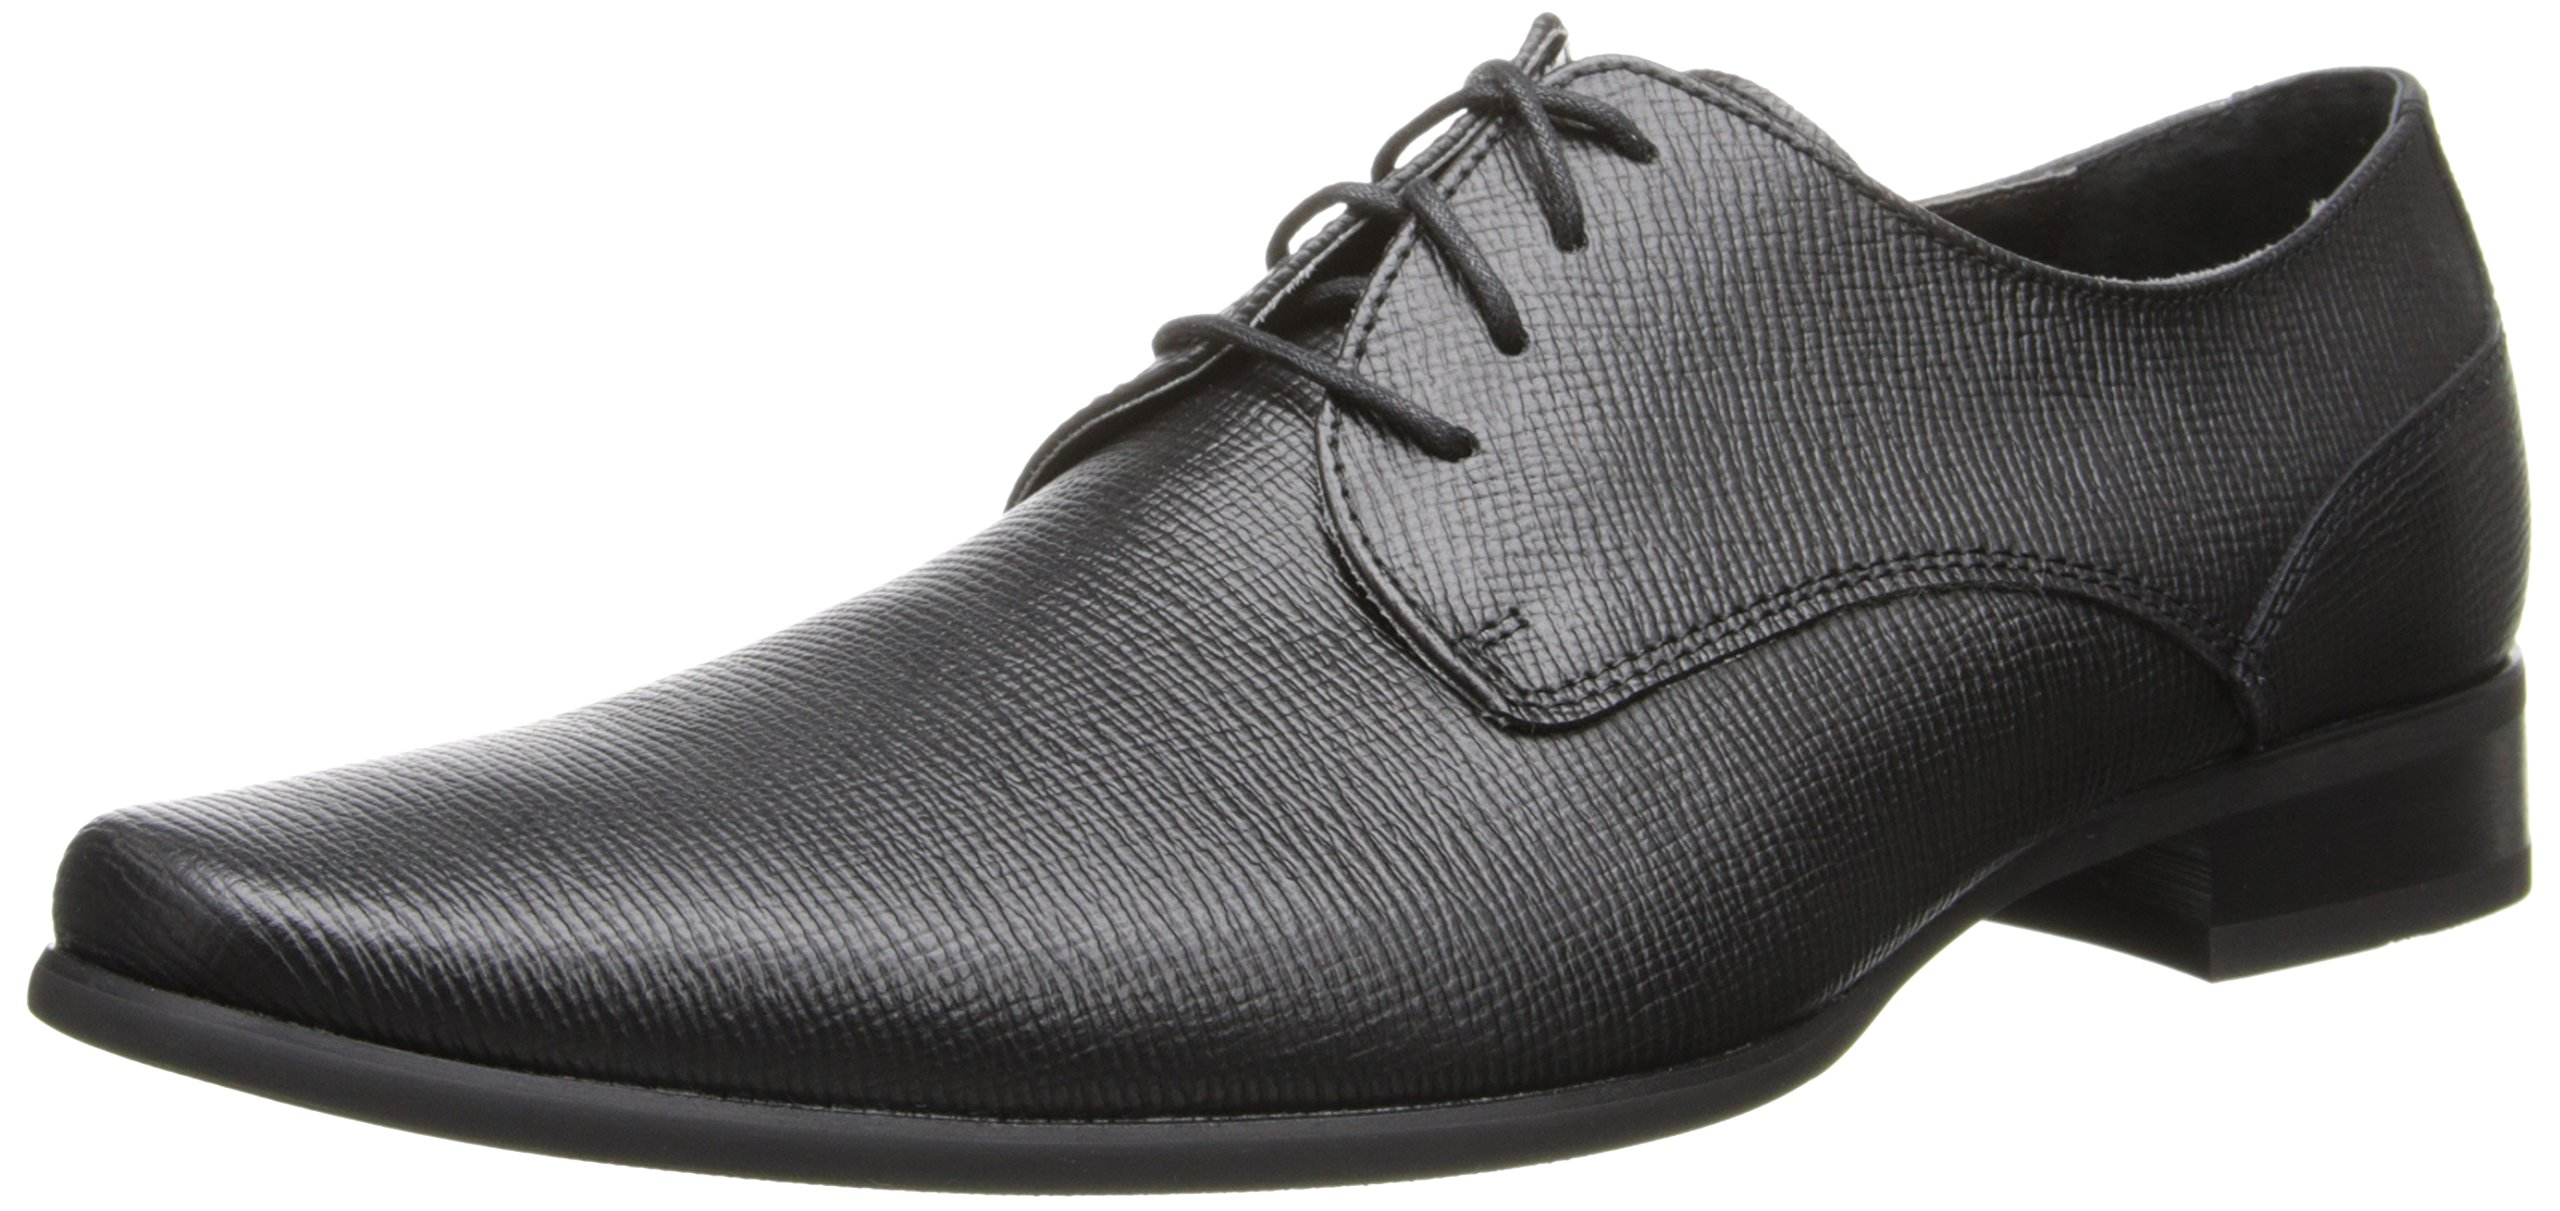 Calvin Klein Men's Brodie Epi Leather Oxford Shoe